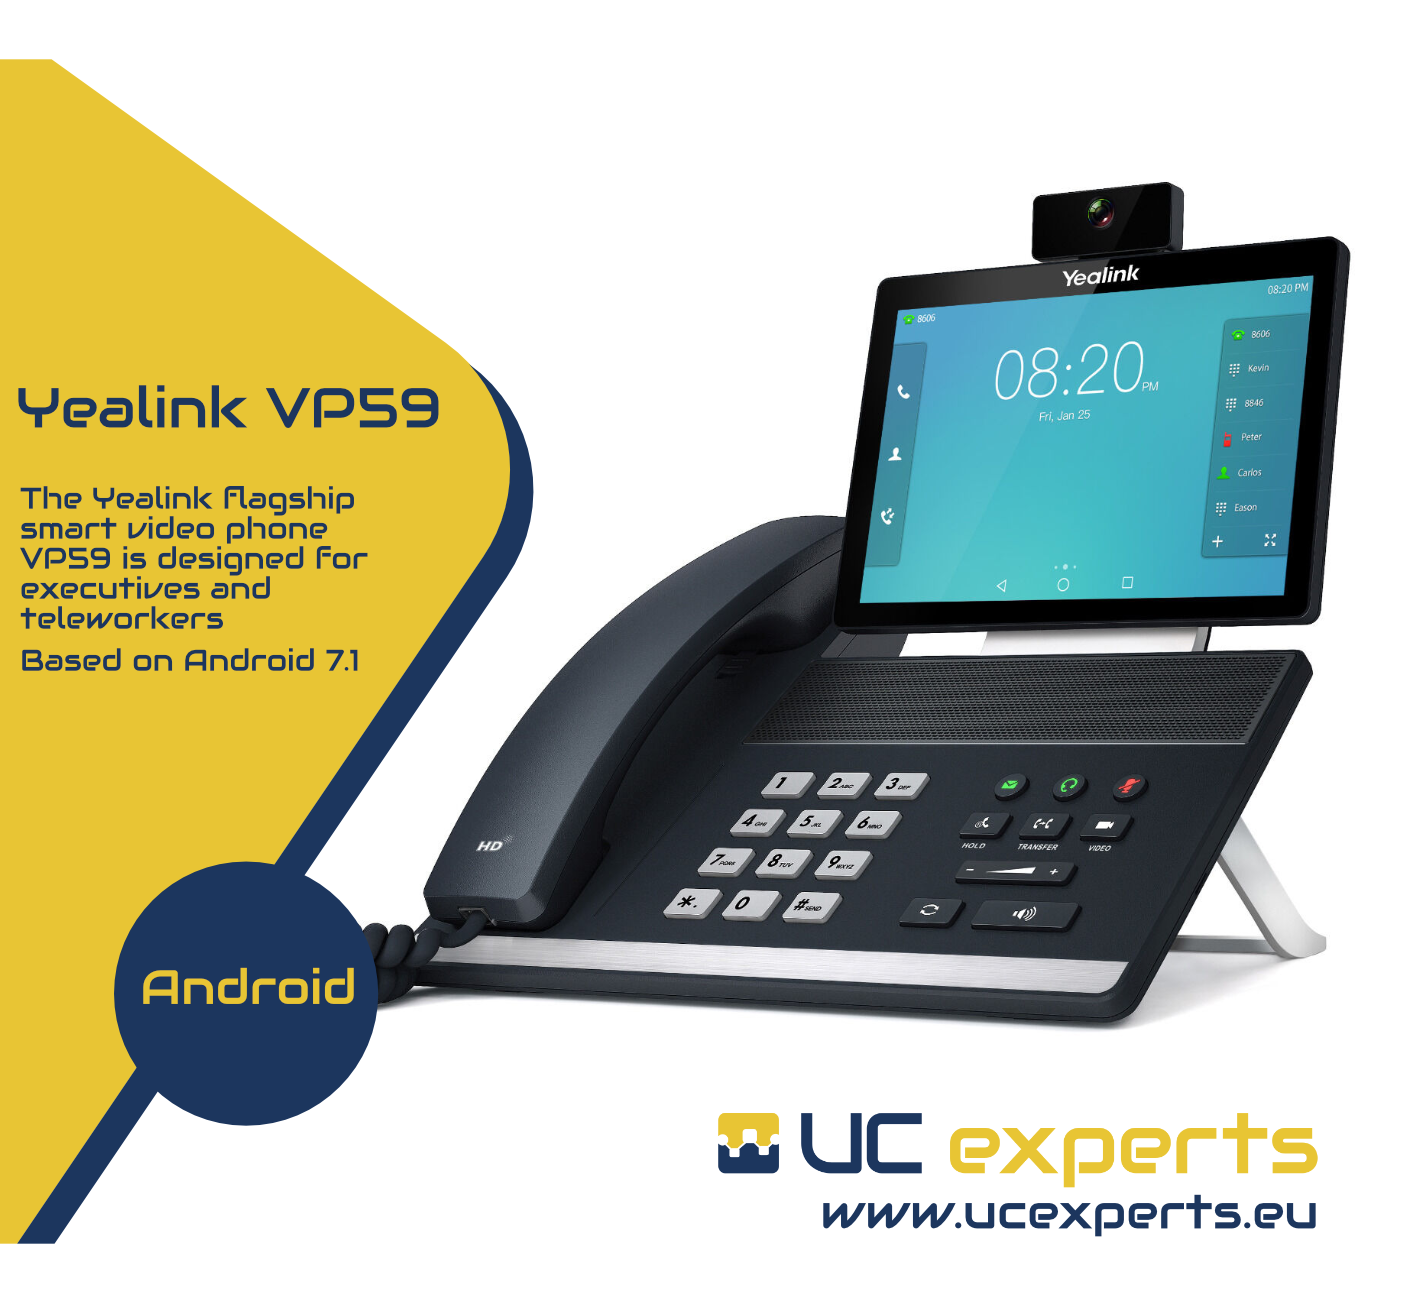 The Yealink flagship smart video phone VP59 is designed for executives and teleworkers